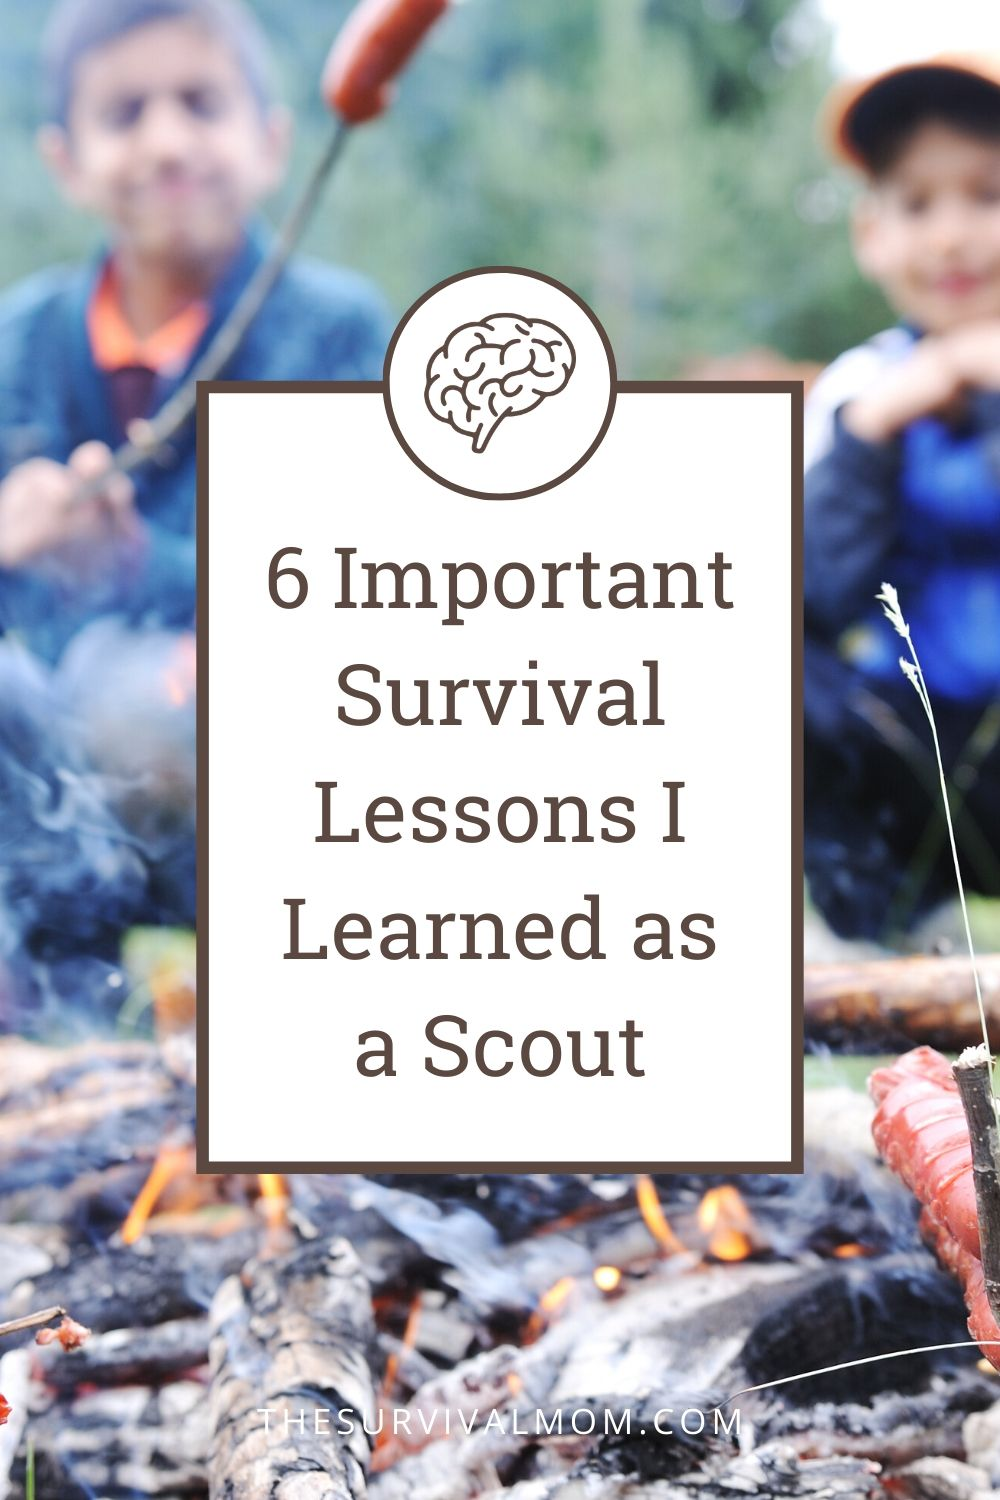 6 Important Survival Lessons I Learned as a Scout via The Survival Mom